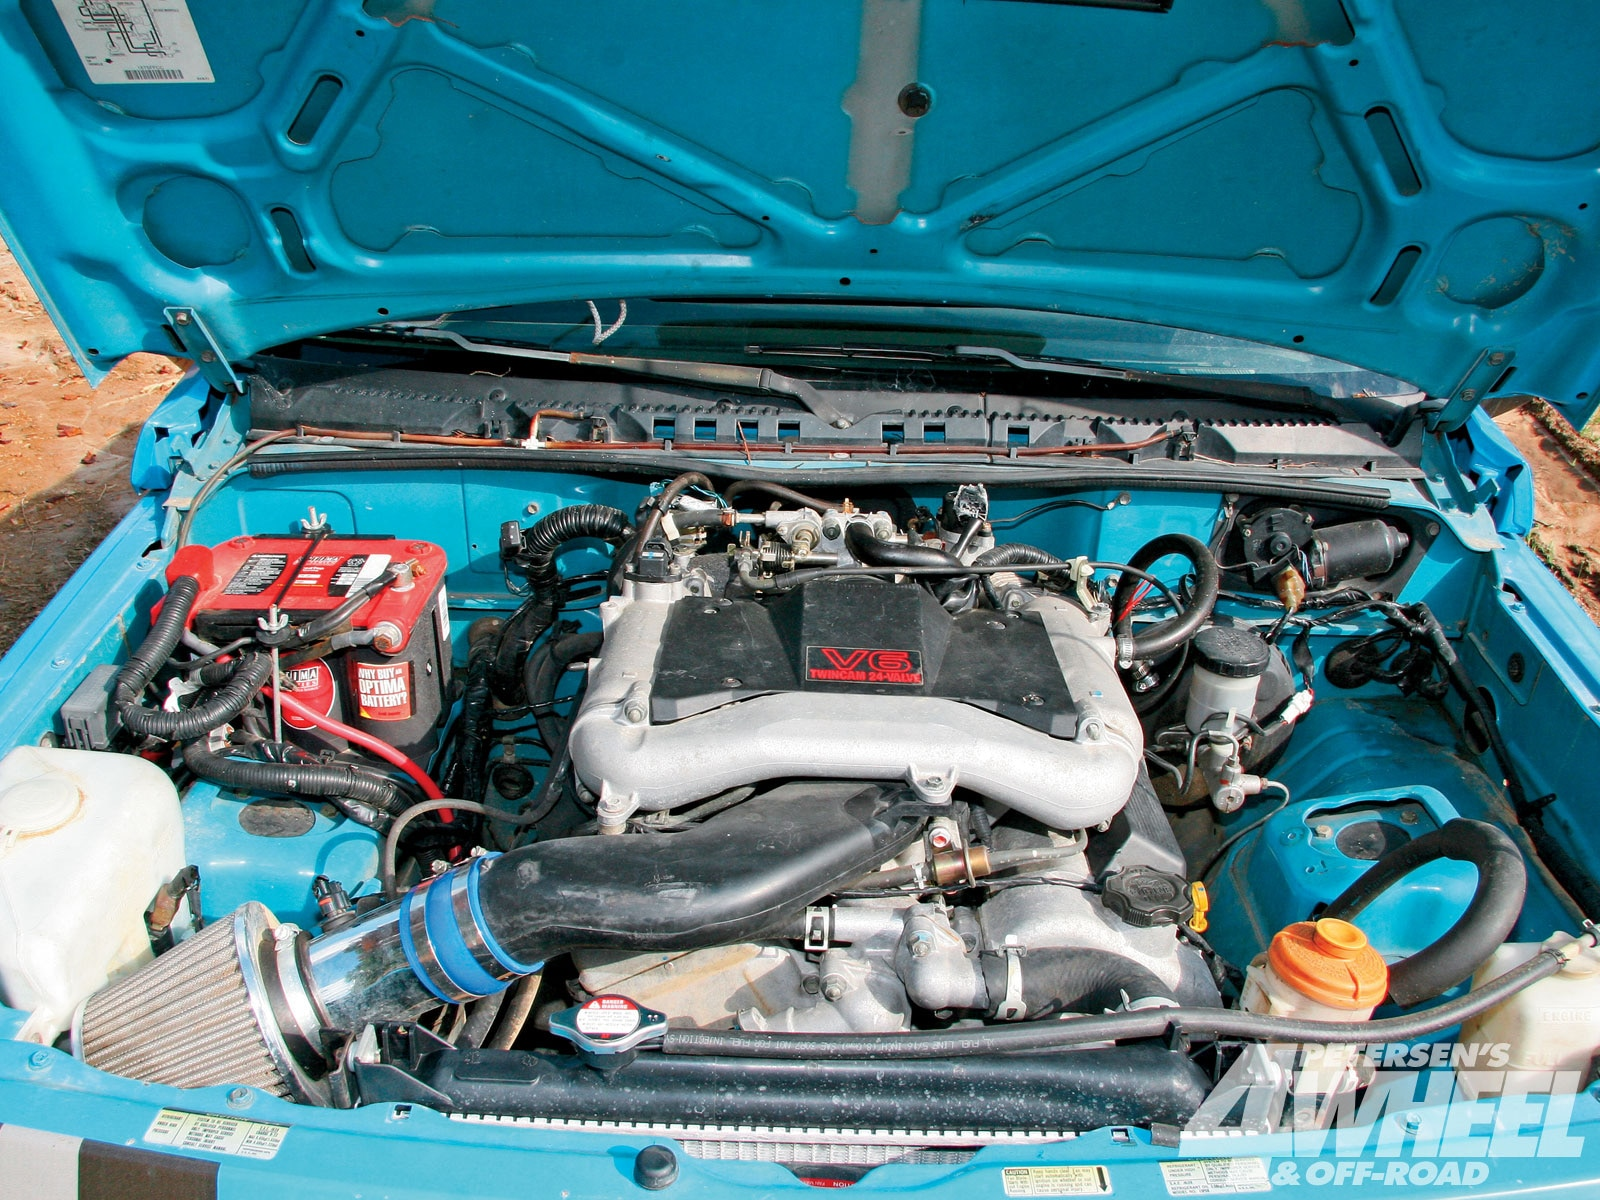 131 1008 05+1992 geo tracker+suzuki grand vitara engine